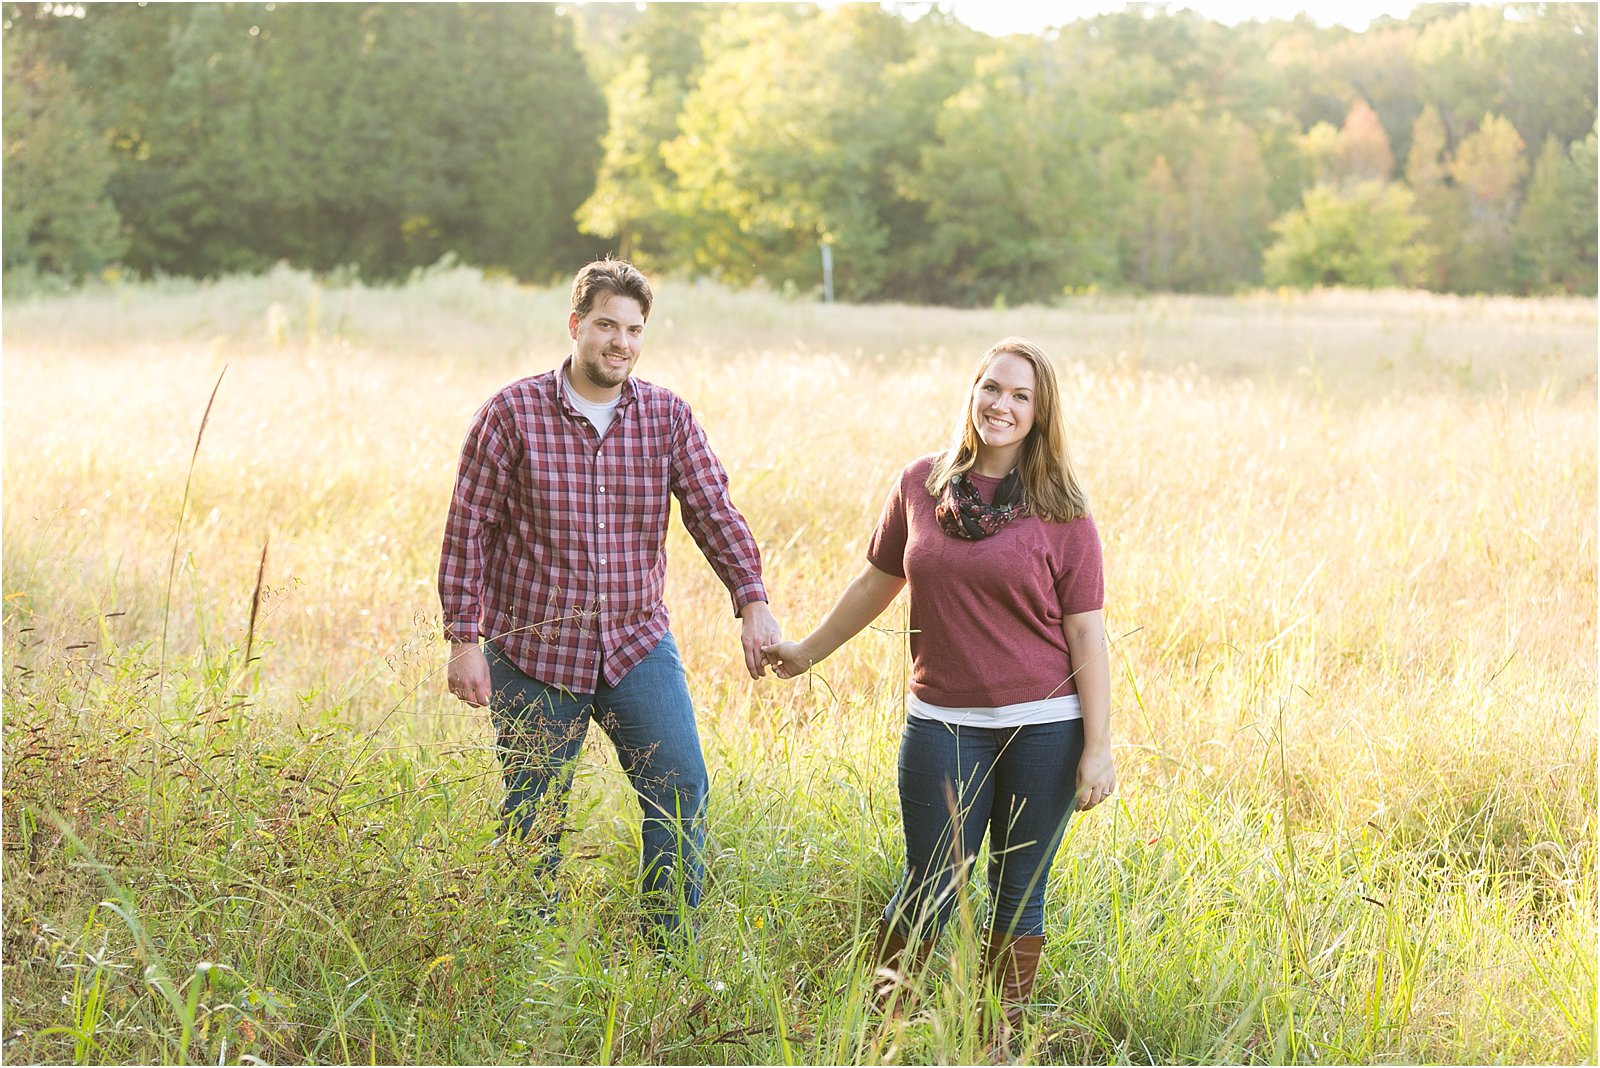 jessica_ryan_photography_pumpkin_patch_engagement_portraits_fall_october_engagements_virginia_beach_chesapeake_0301